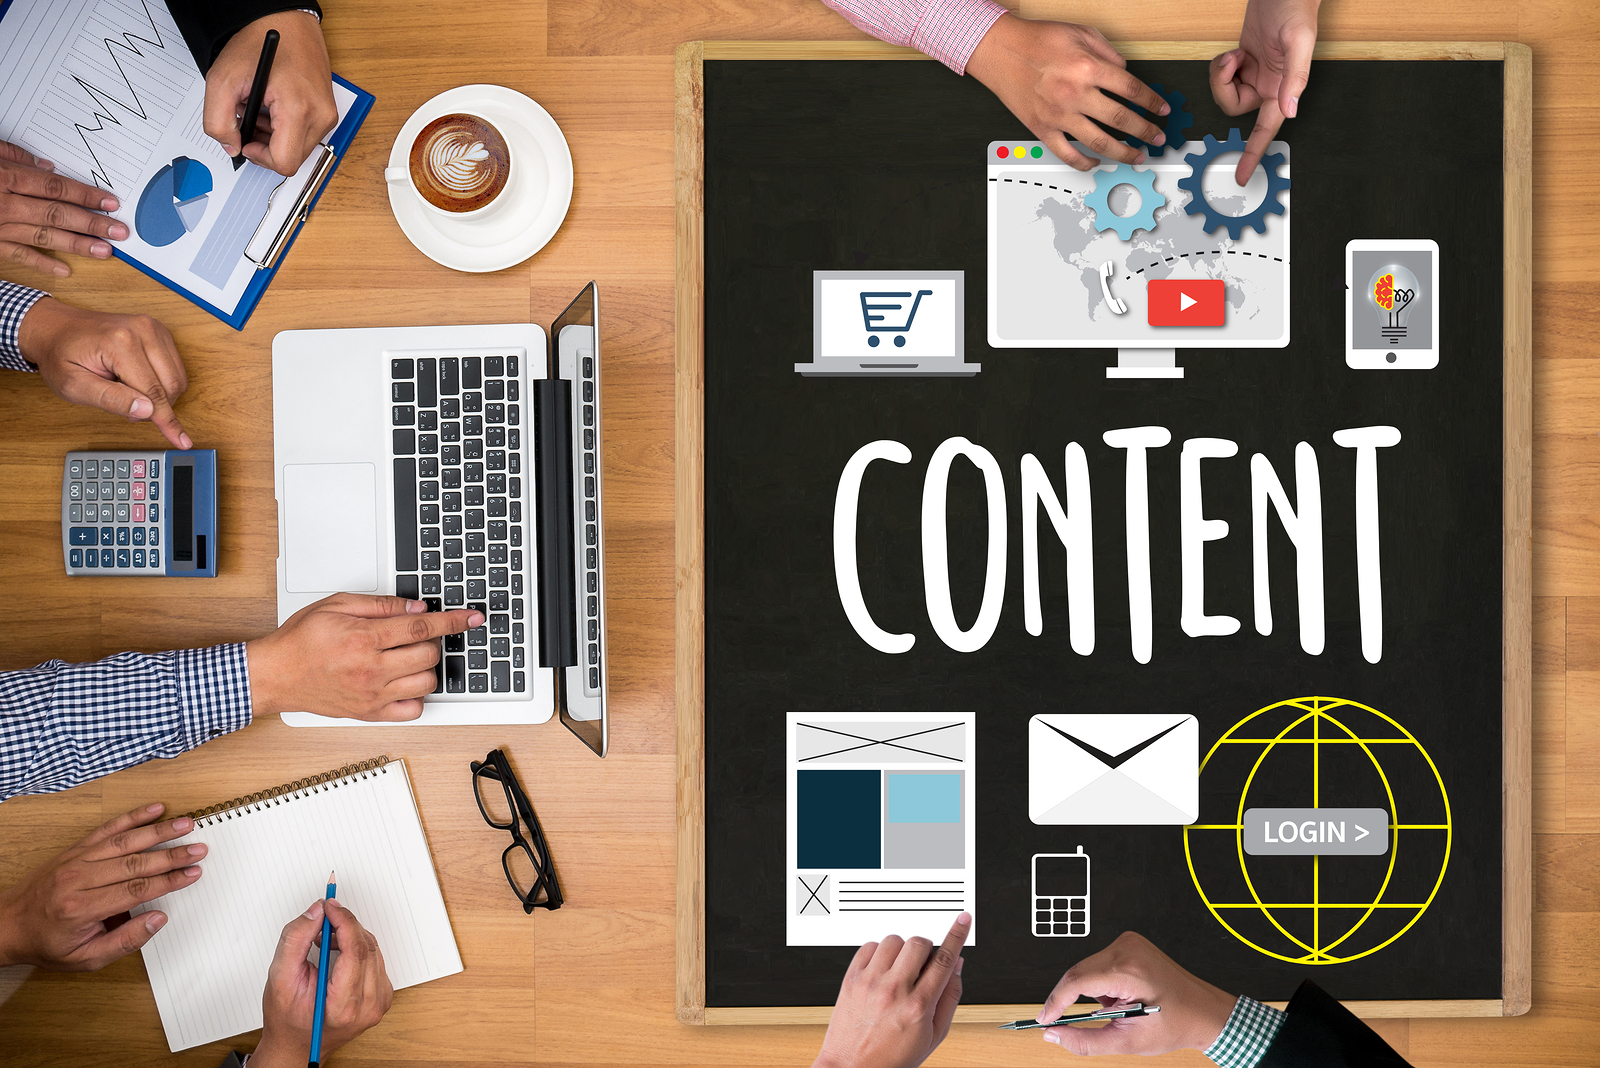 5 Major Content Marketing Trends for 2017